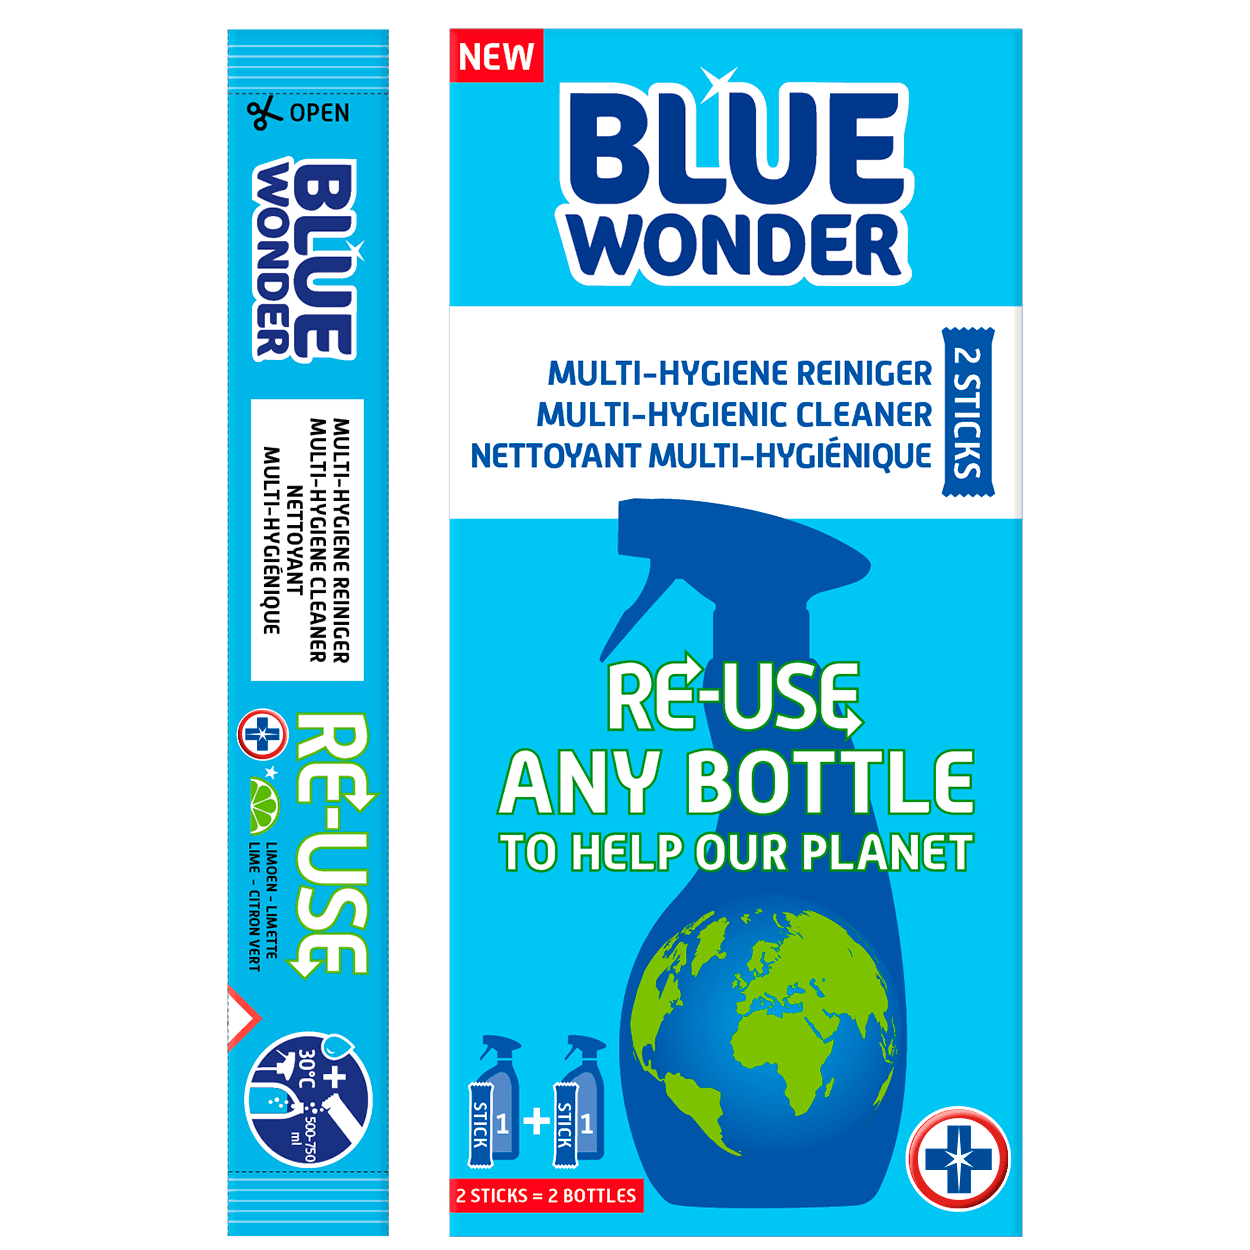 This box Blue Wonder contains 2 very powerful sticks. The contents of 1 stick easily dissolves in a bottle with 500-750 ml warm water, transforming into a strong MULTI-HYGIENIC CLEANER, LIMESCALE CLEANER OR KITCHEN DEGREASER. Reusing your plastic bottles will help our planet stay blue – patent pending. 100% vegan!  PREPARE CLEANER IN 3 STEPS RE-USE: Take a used bottle. Rinse the bottle & sprayer with water. Fill the bottle with 500-750 ml warm water (30° Celsius). FILL: Pour the contents of 1 stick in the bottle with warm water, attach the sprayer and wait 1-3 minutes. Wash your hands well afterwards. SHAKE: Shake the bottle a little and your HYGIENIC CLEANER is ready for use!